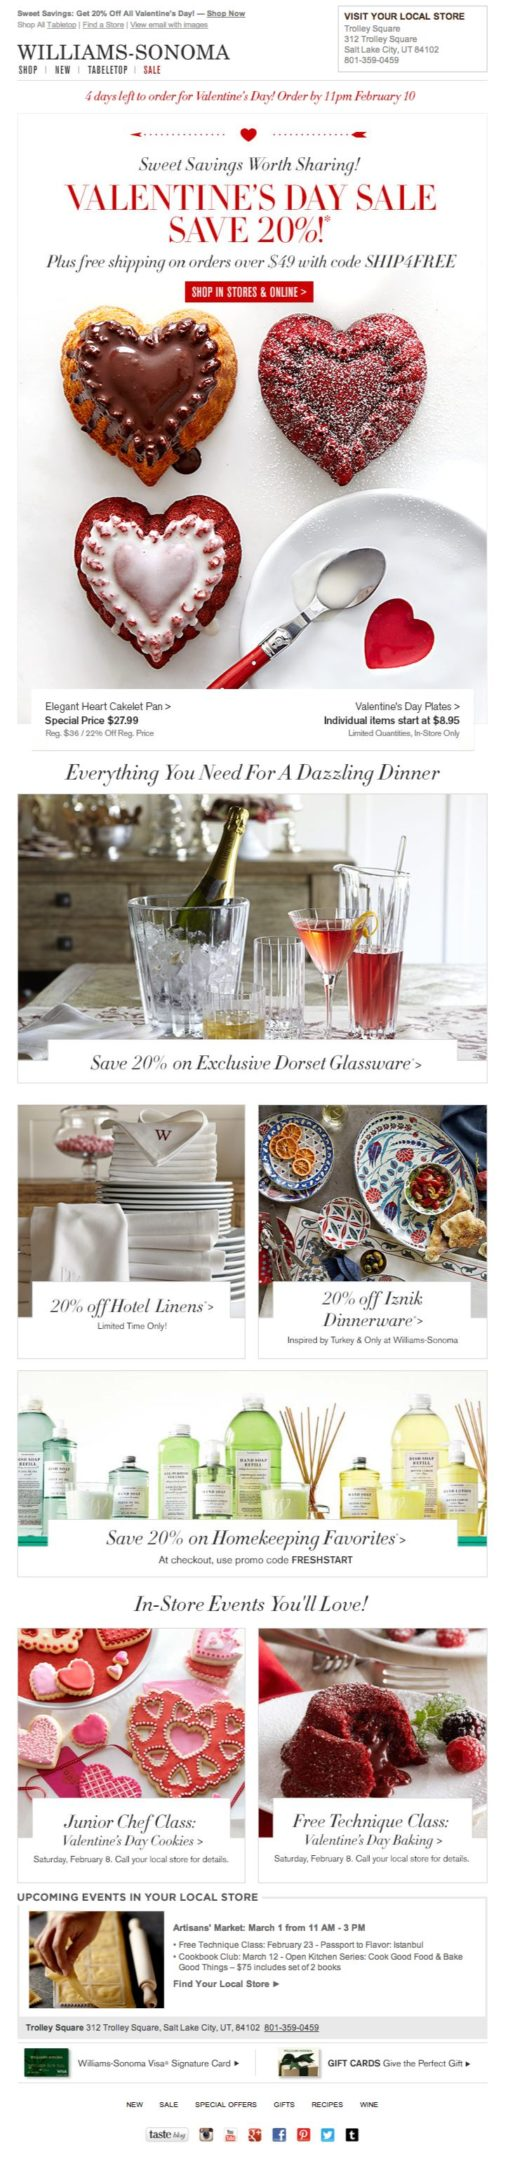 William-Sonoma Valentine's Day email 2014